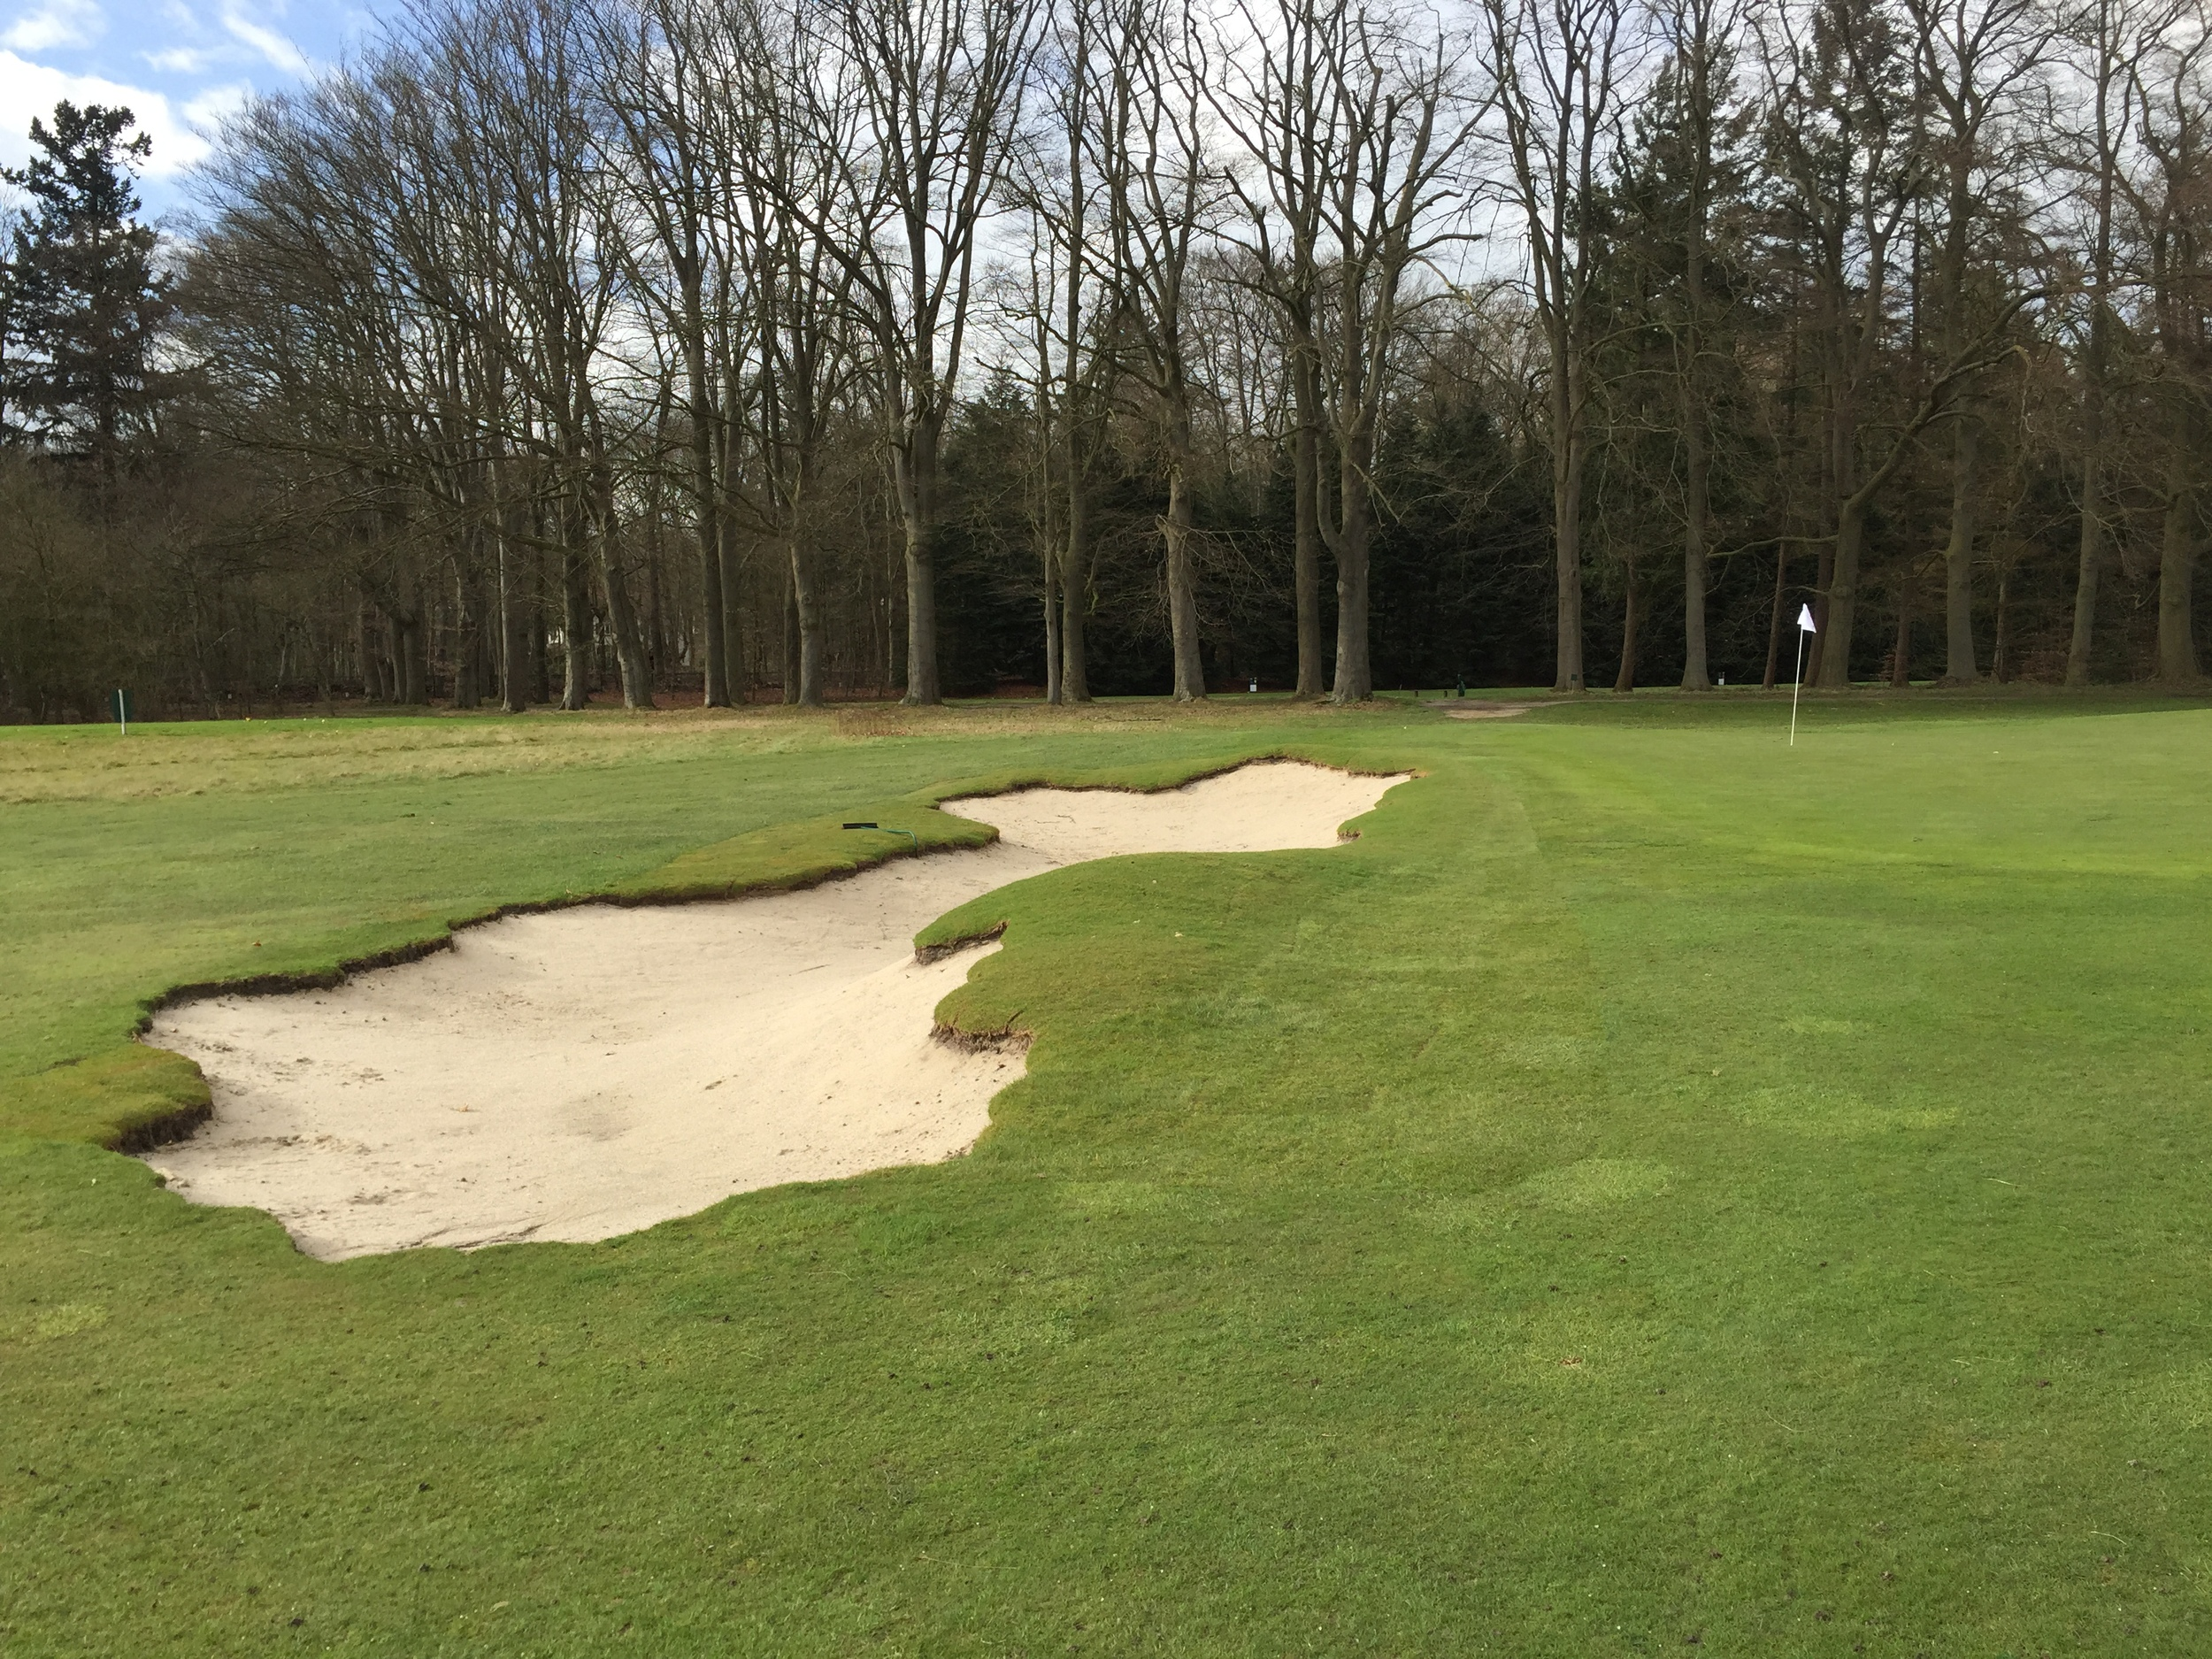 Bonus image of the 13th green bunker showing how it changes form as it isencountered